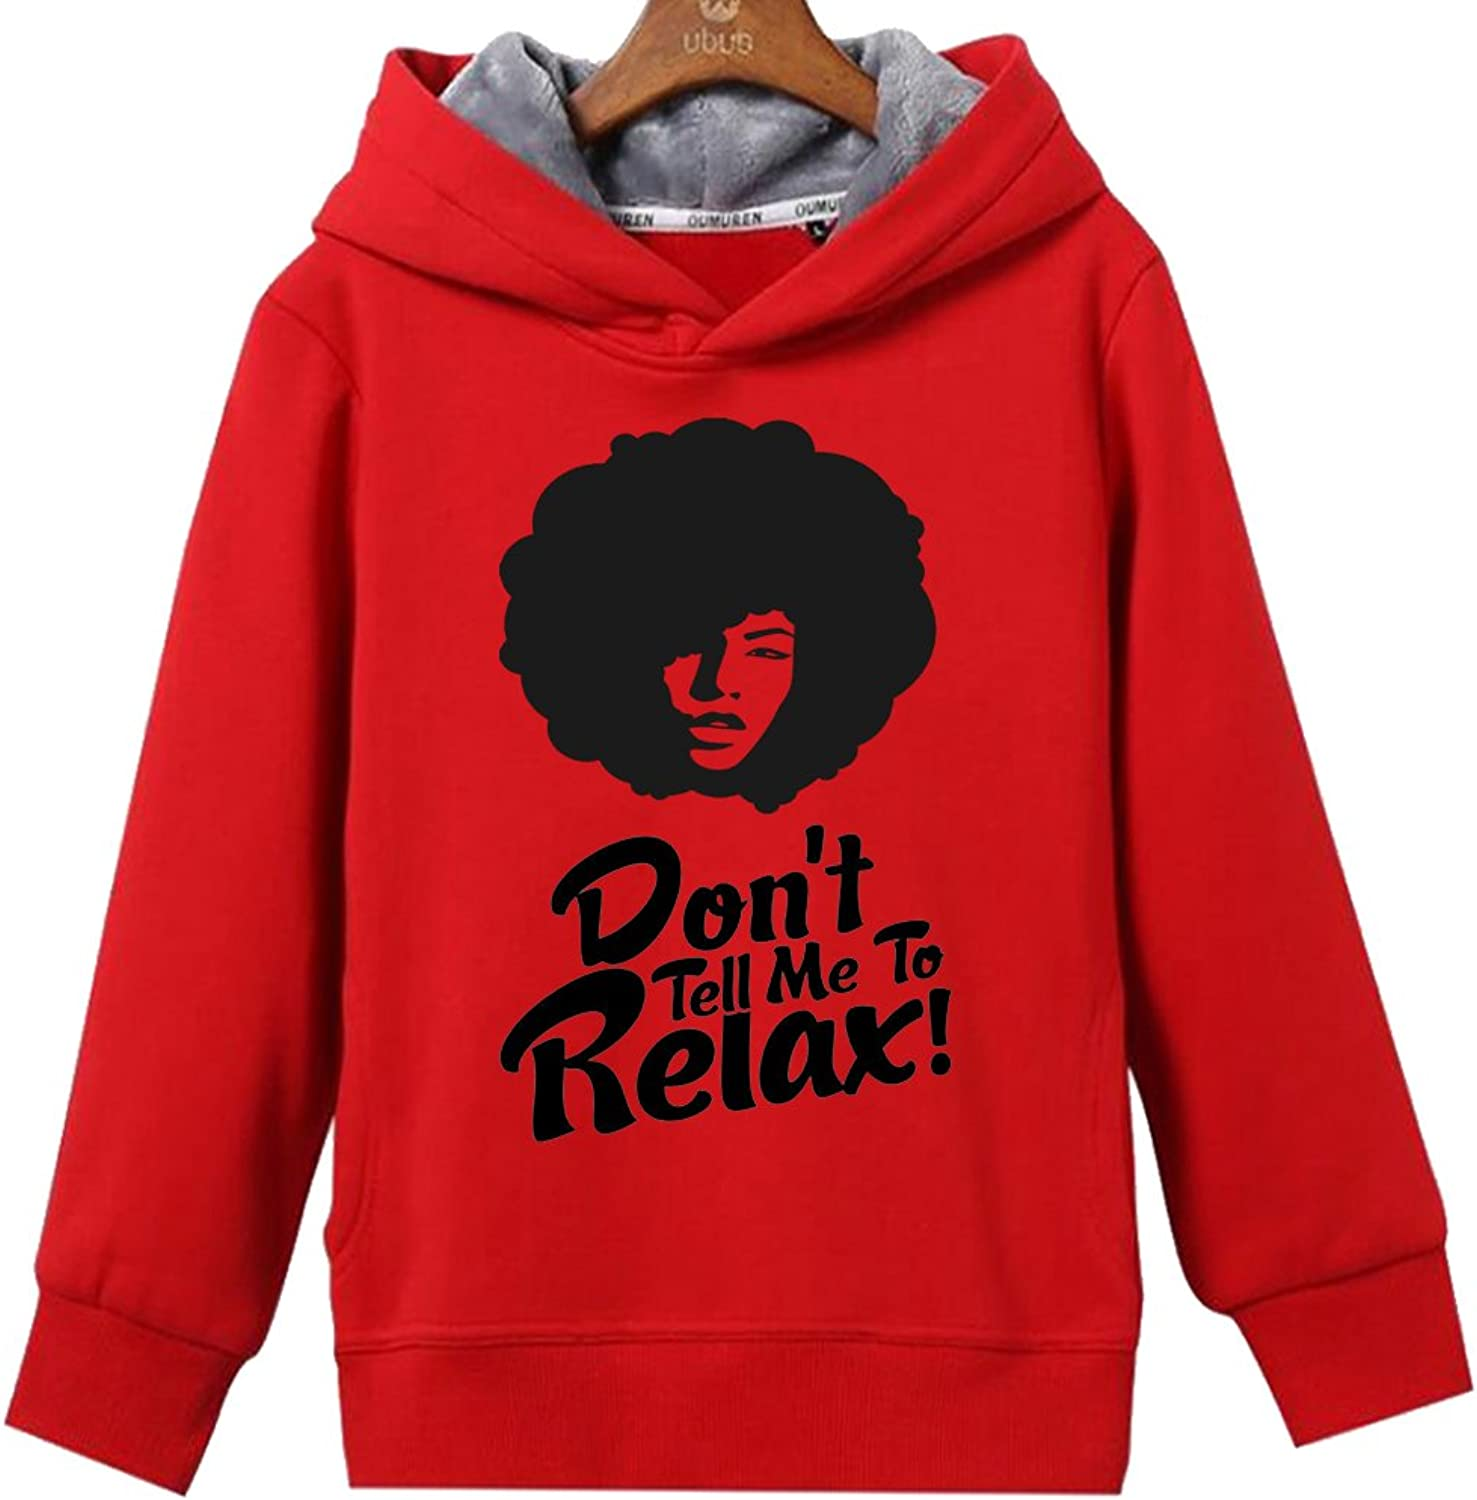 CINFAN Women's Natural Hair Don't Tell Me To Relax Hoodie with Pockets